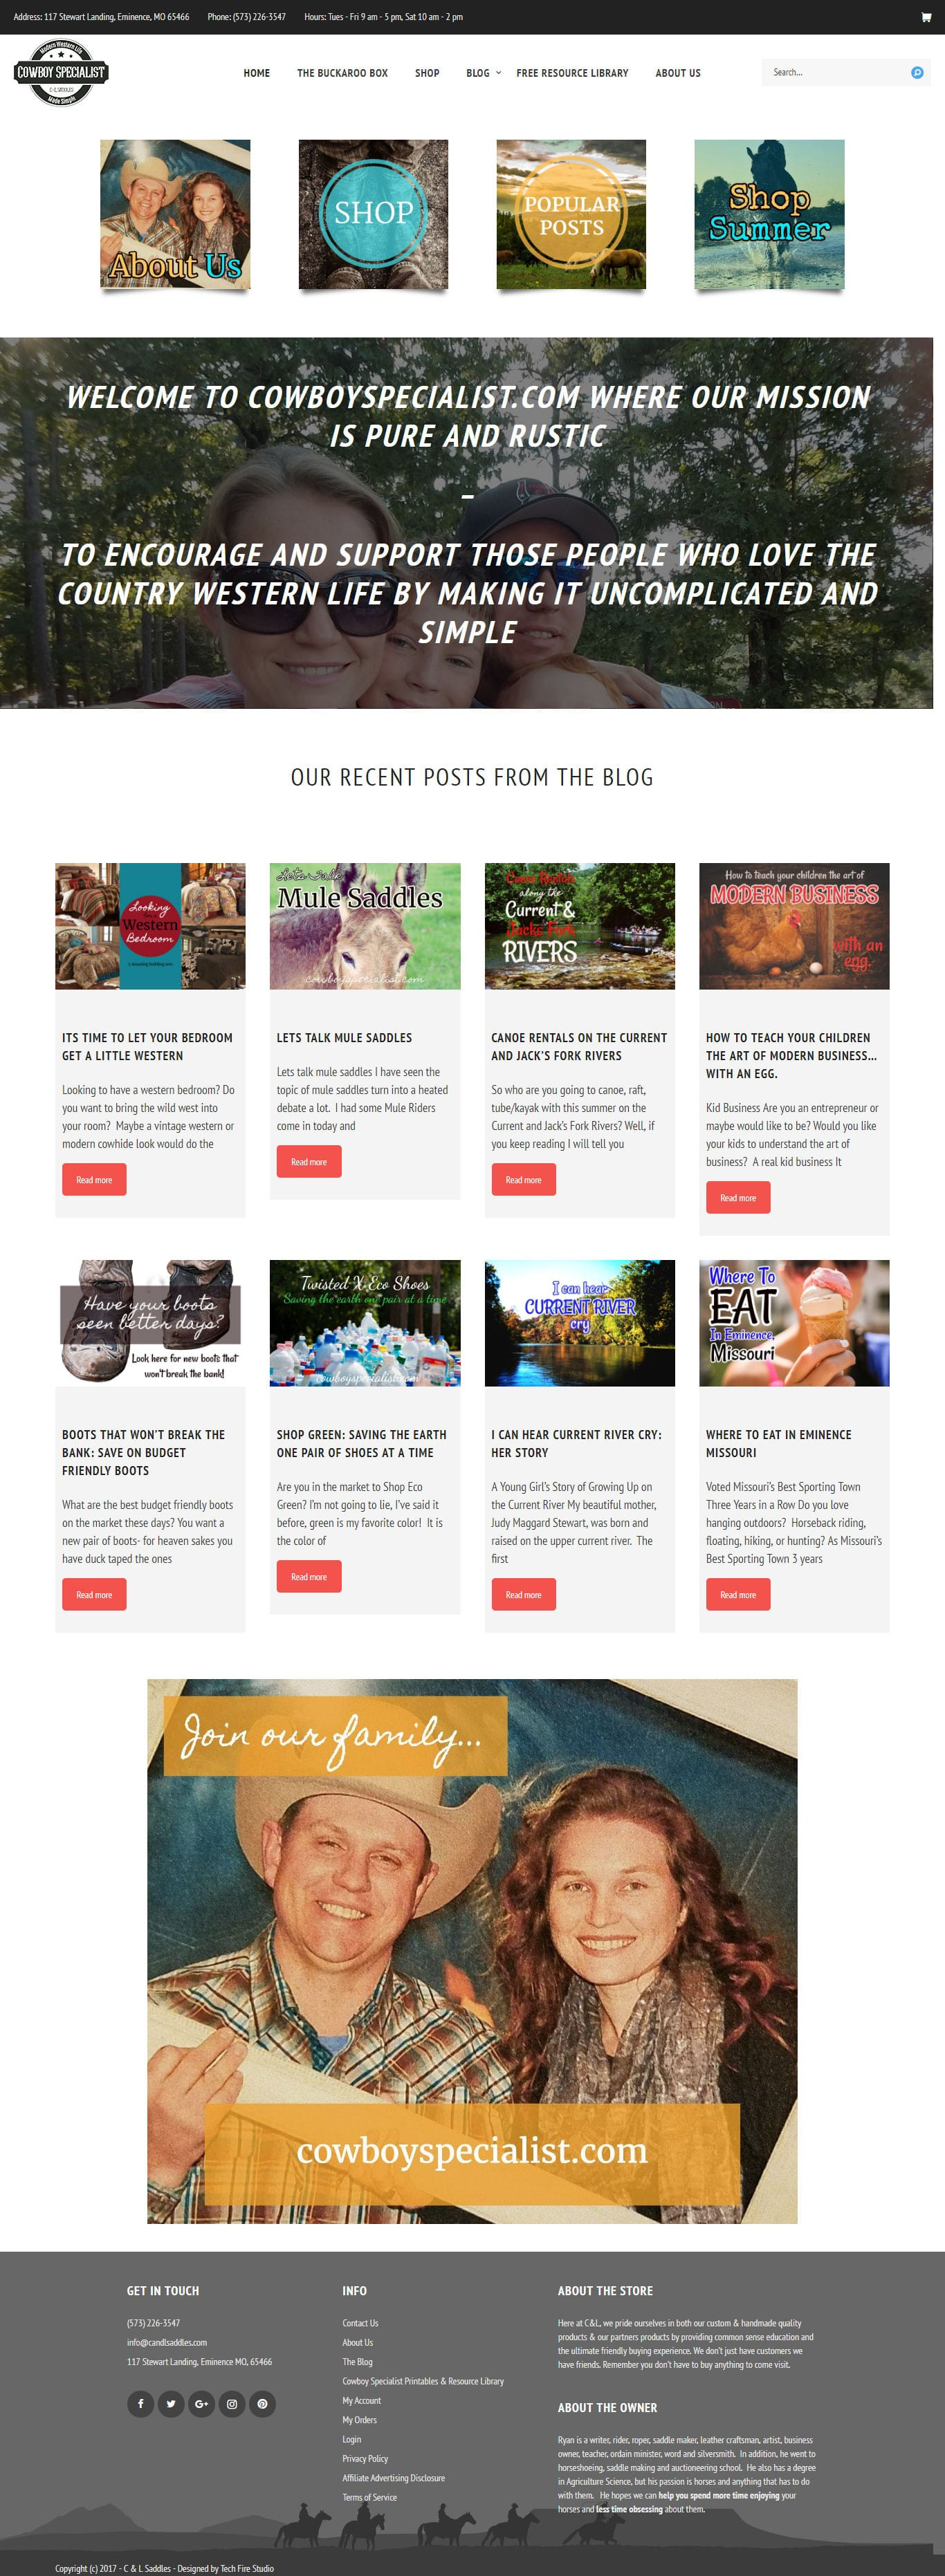 Cowboy Specialist – Webiste, Blog, and subscription based E-commerce store for western lifestyle blog